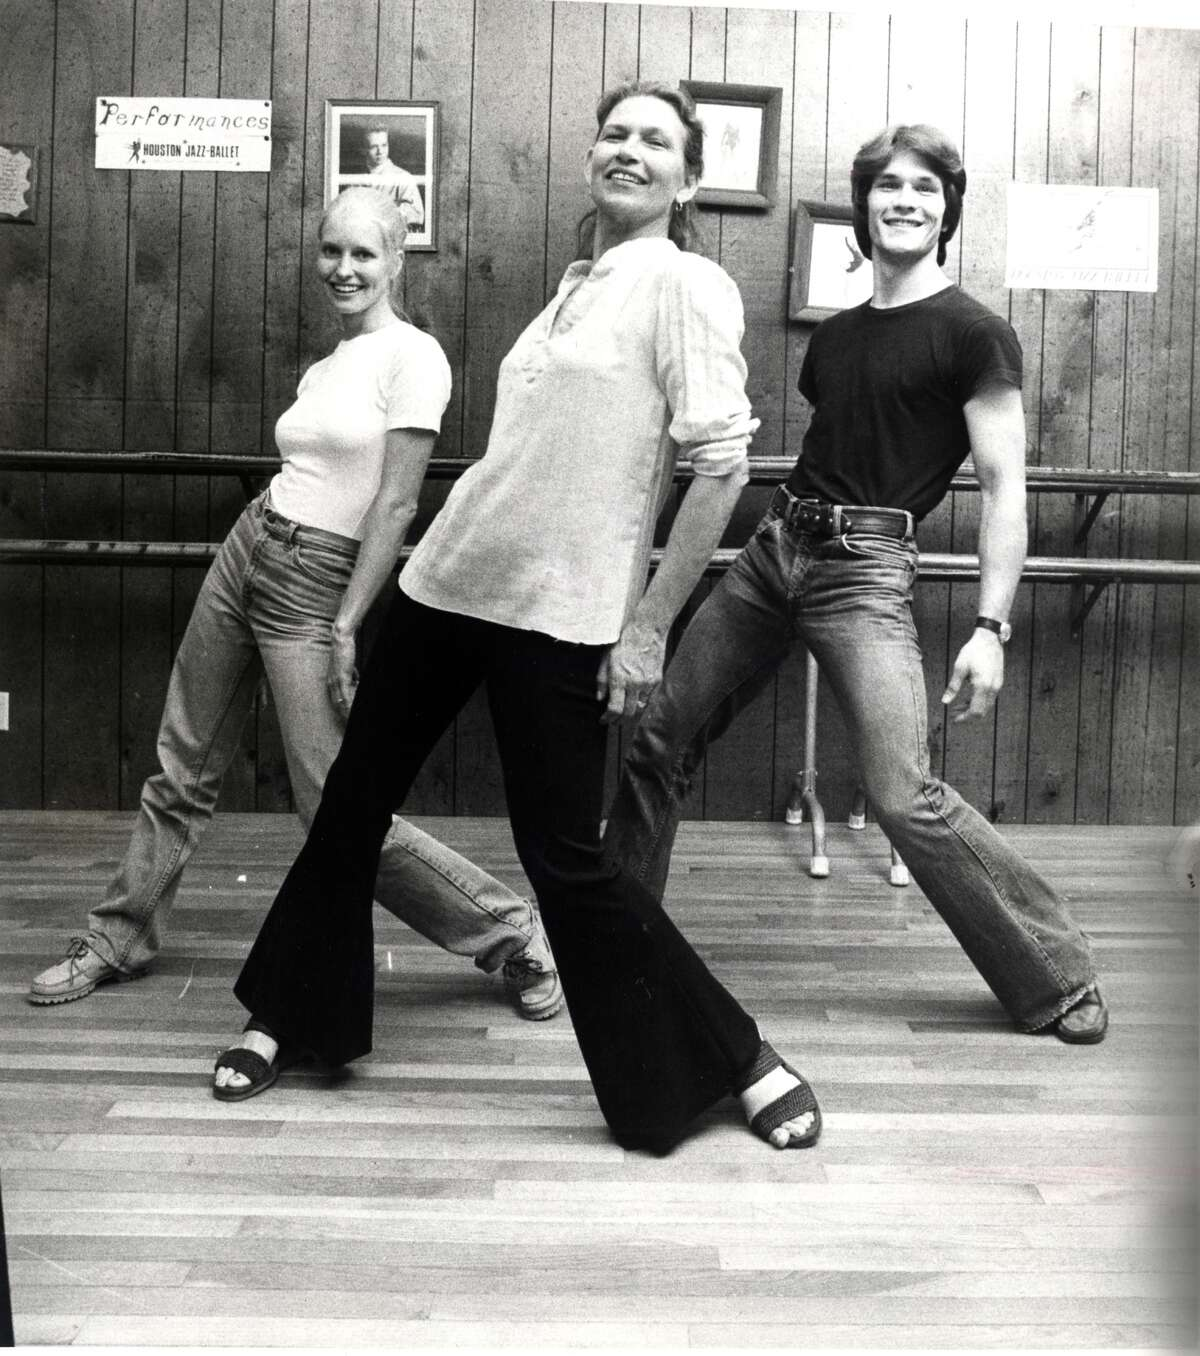 (R-L) actor Patrick Swayze, his mother Patsy Swayze and his wife Lisa Haapaniemi (aka Niemi) dance at Patsy Swayze's dance studio in Houston in 1978. (Tom Colburn / Houston Chronicle)